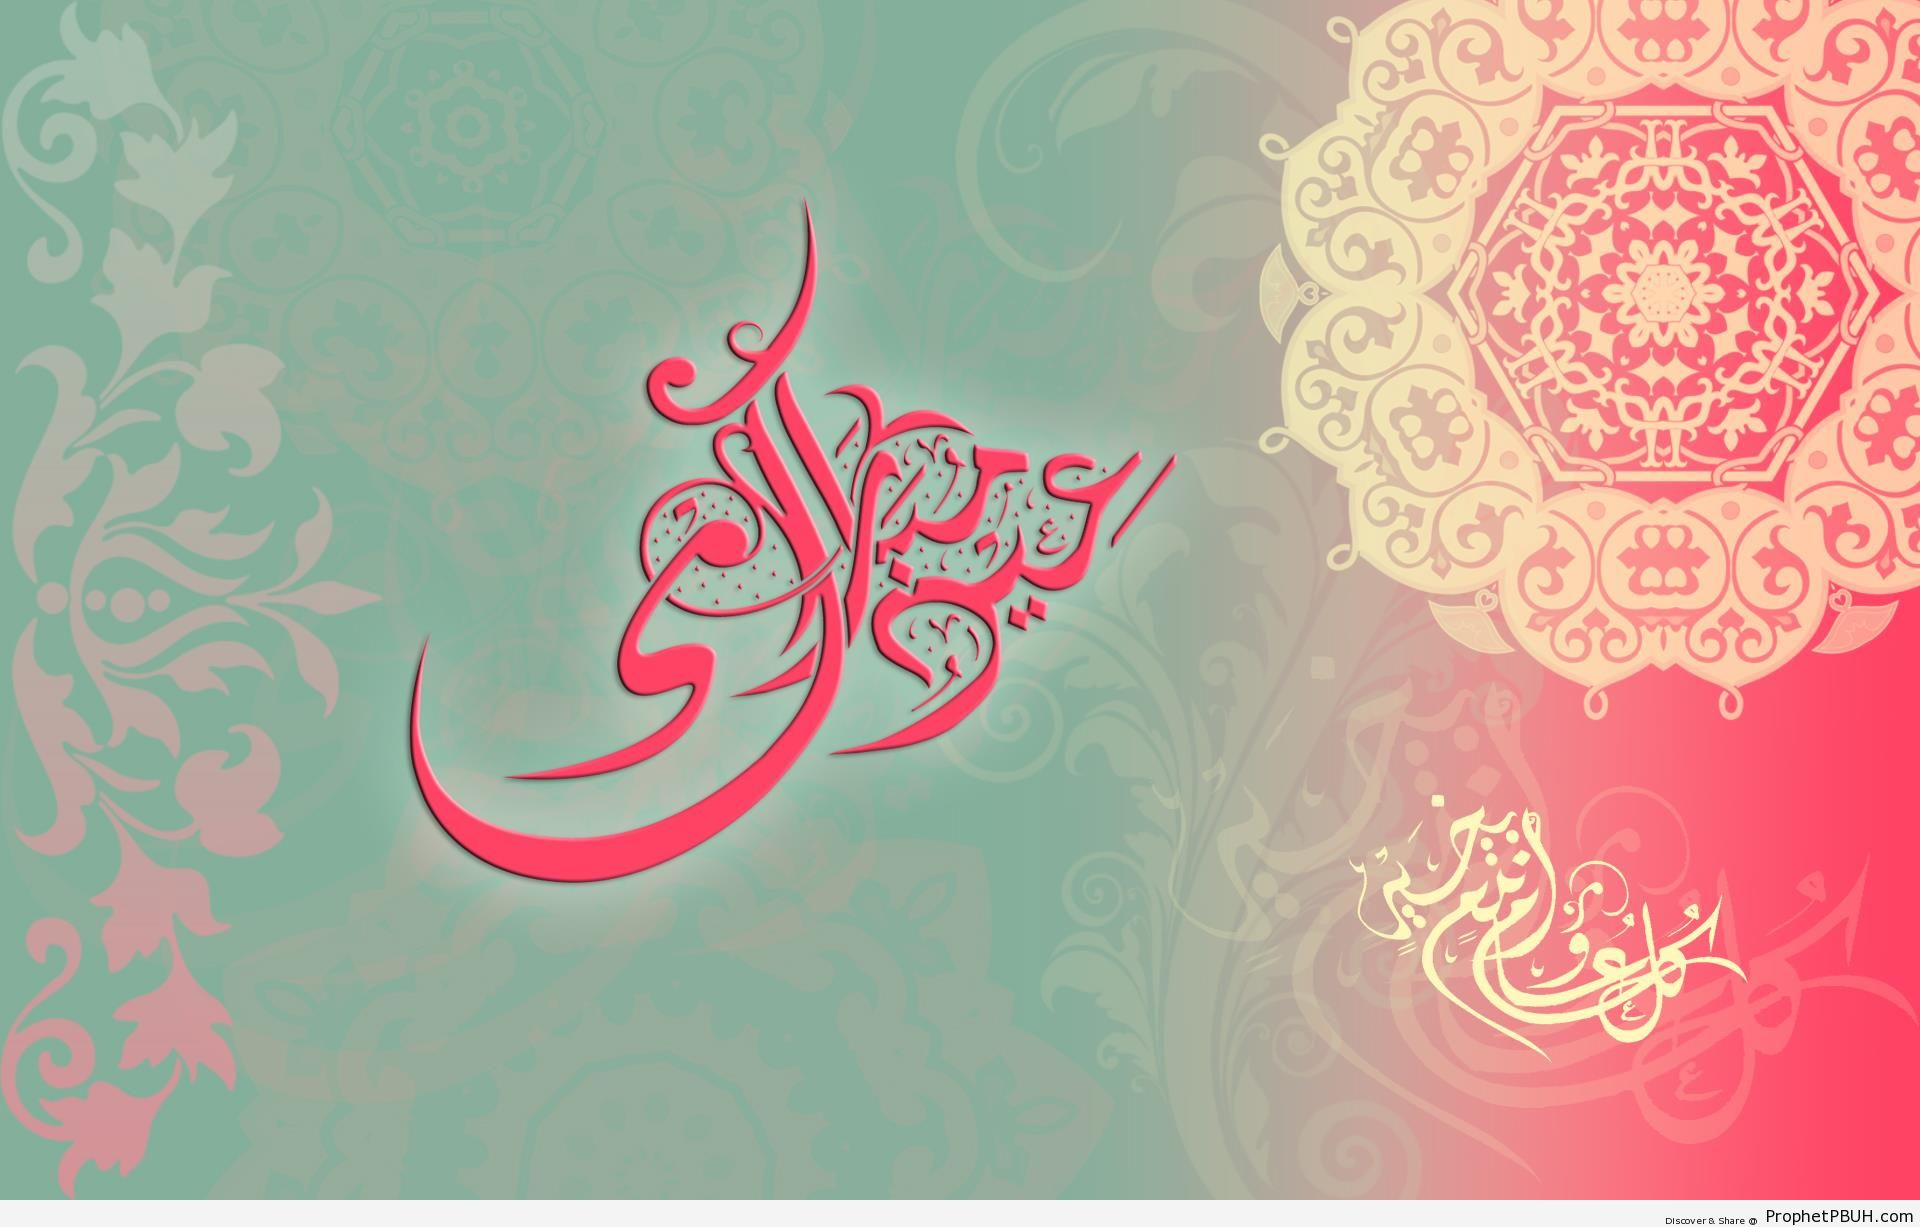 Eid greeting card with calligraphy and zakhrafah arabesque eid eid greeting card with calligraphy and zakhrafah arabesque eid mubarak greeting cards m4hsunfo